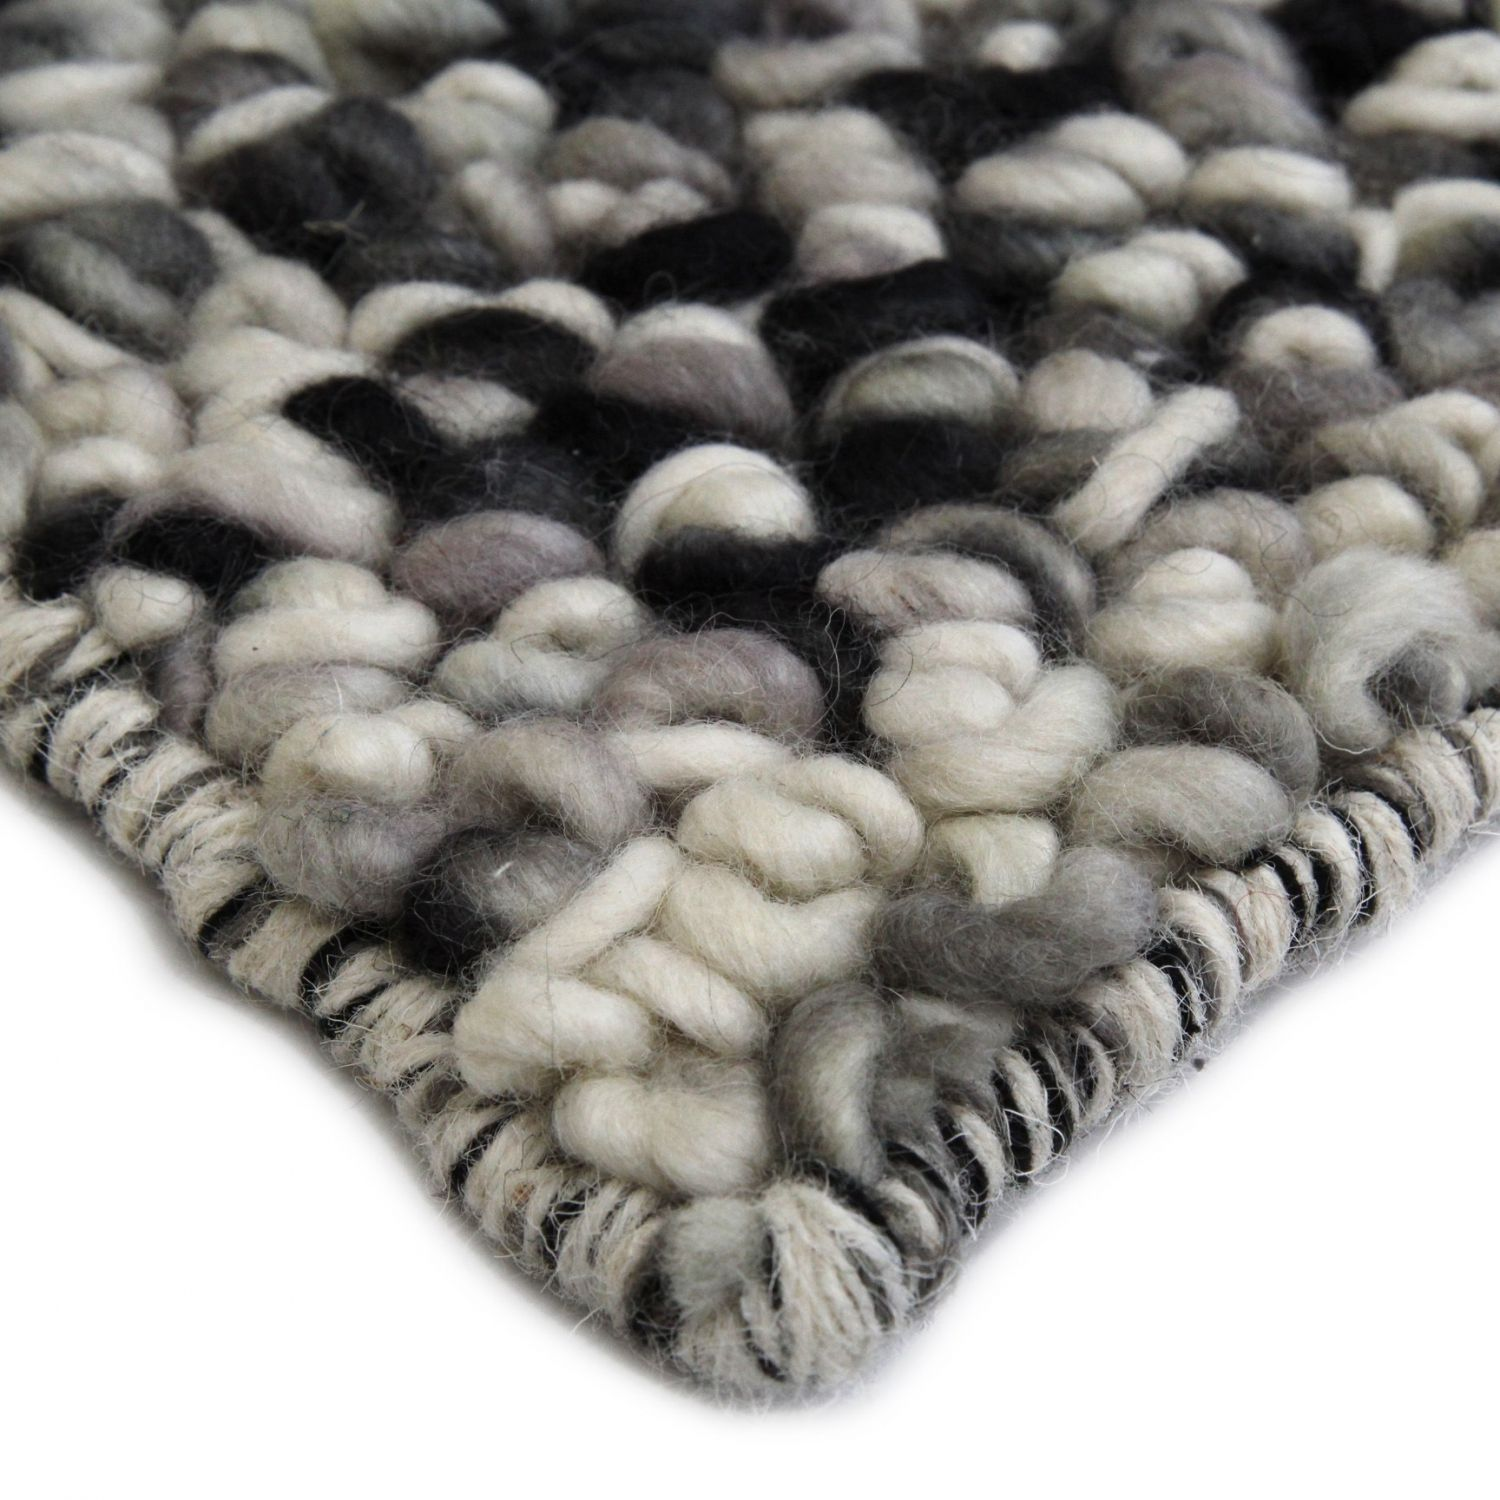 volume-grey-dust textured rugs